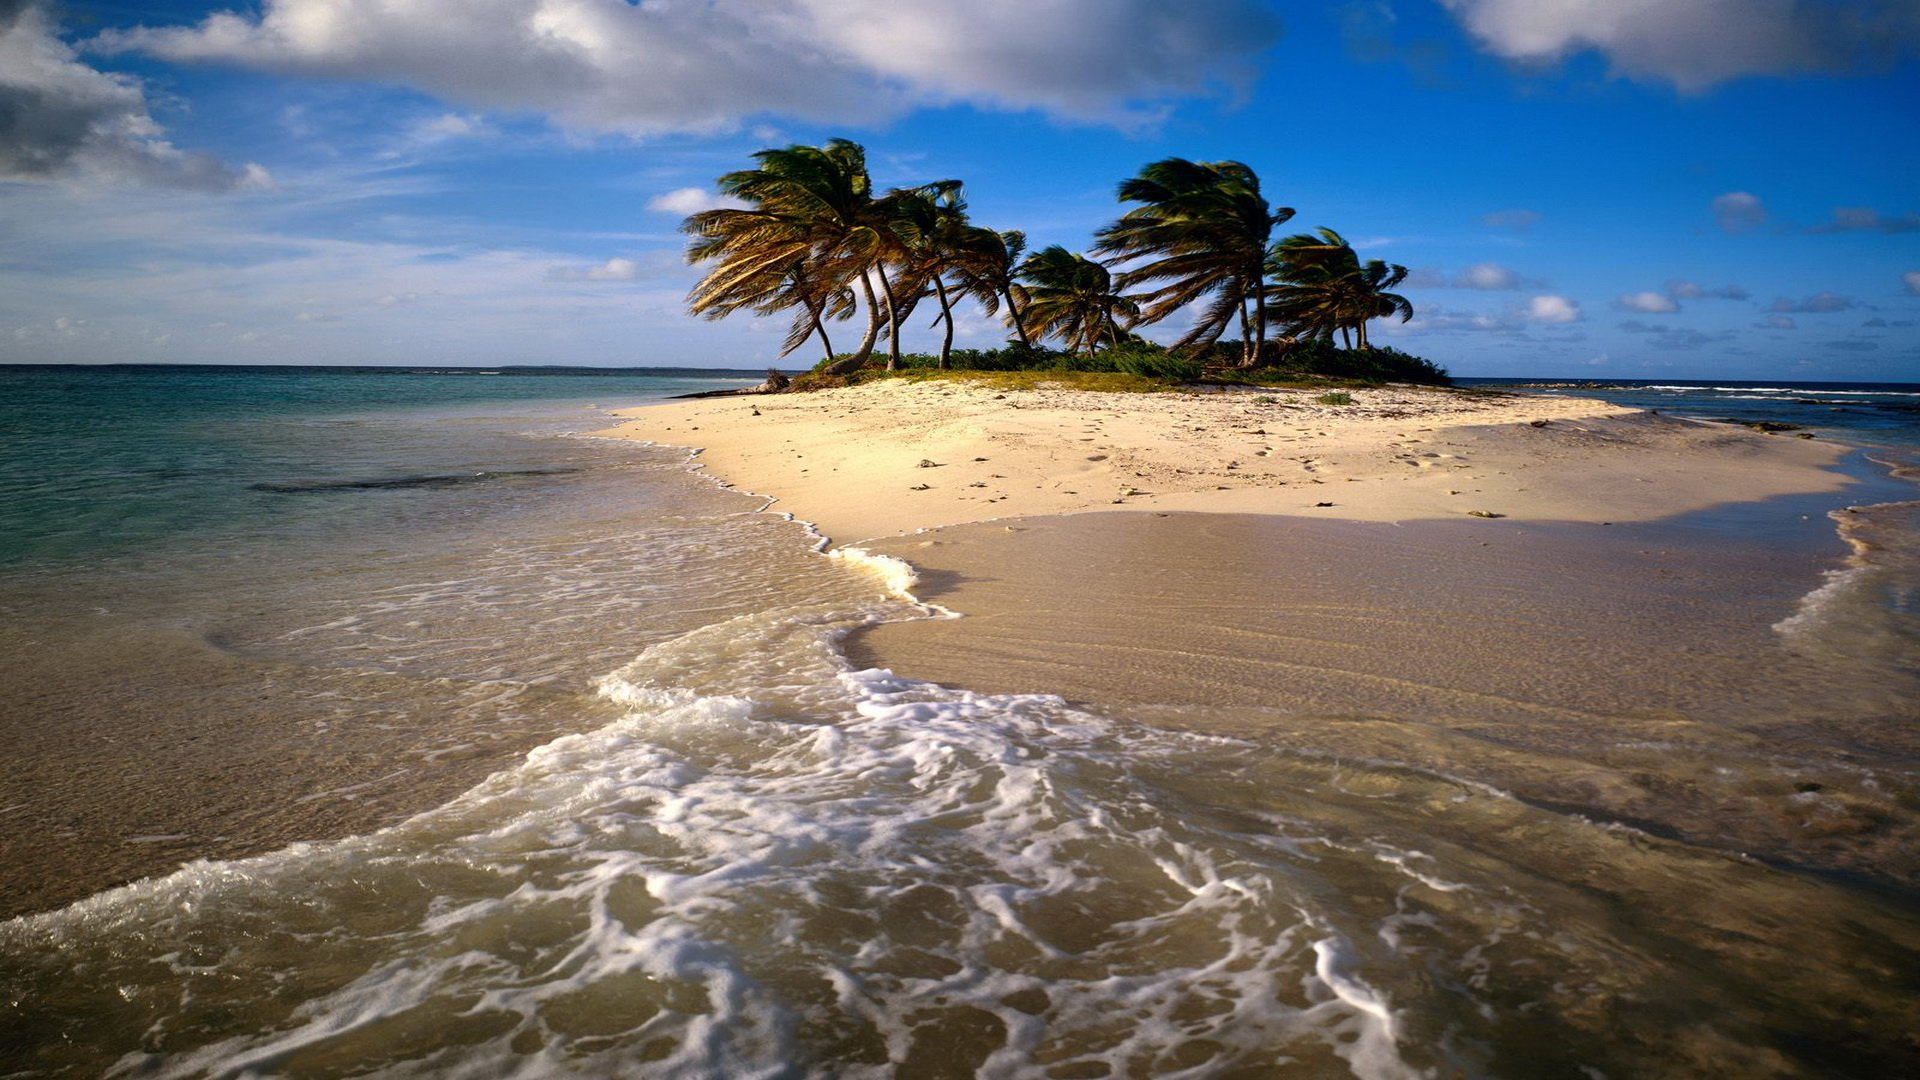 Hd Wallpapers Caribbean Islands Beaches 800 X 624 77 Kb Jpeg HD 1920x1080